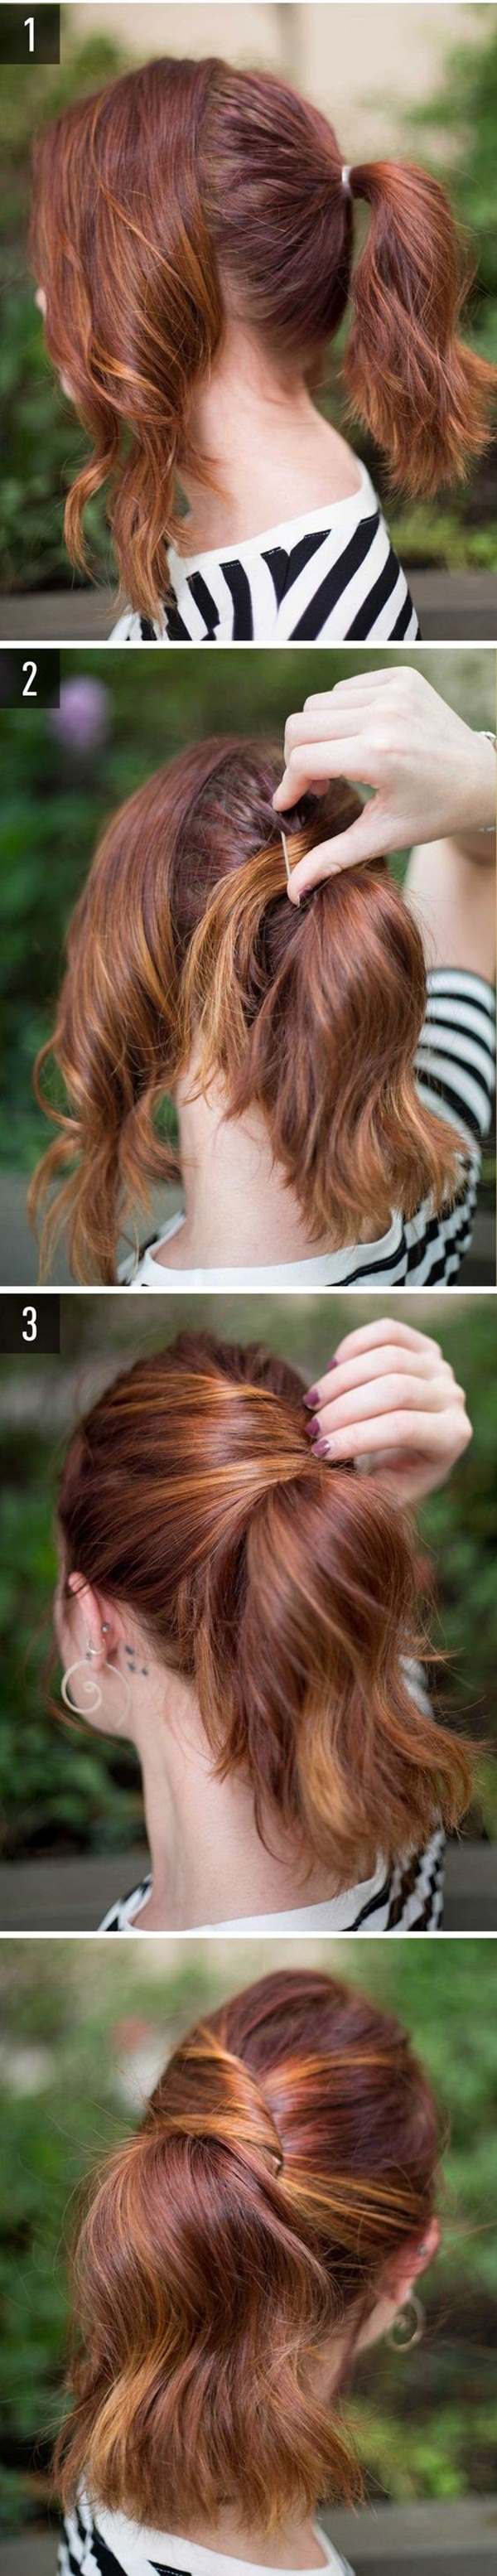 Easy Hairstyles For School (5)